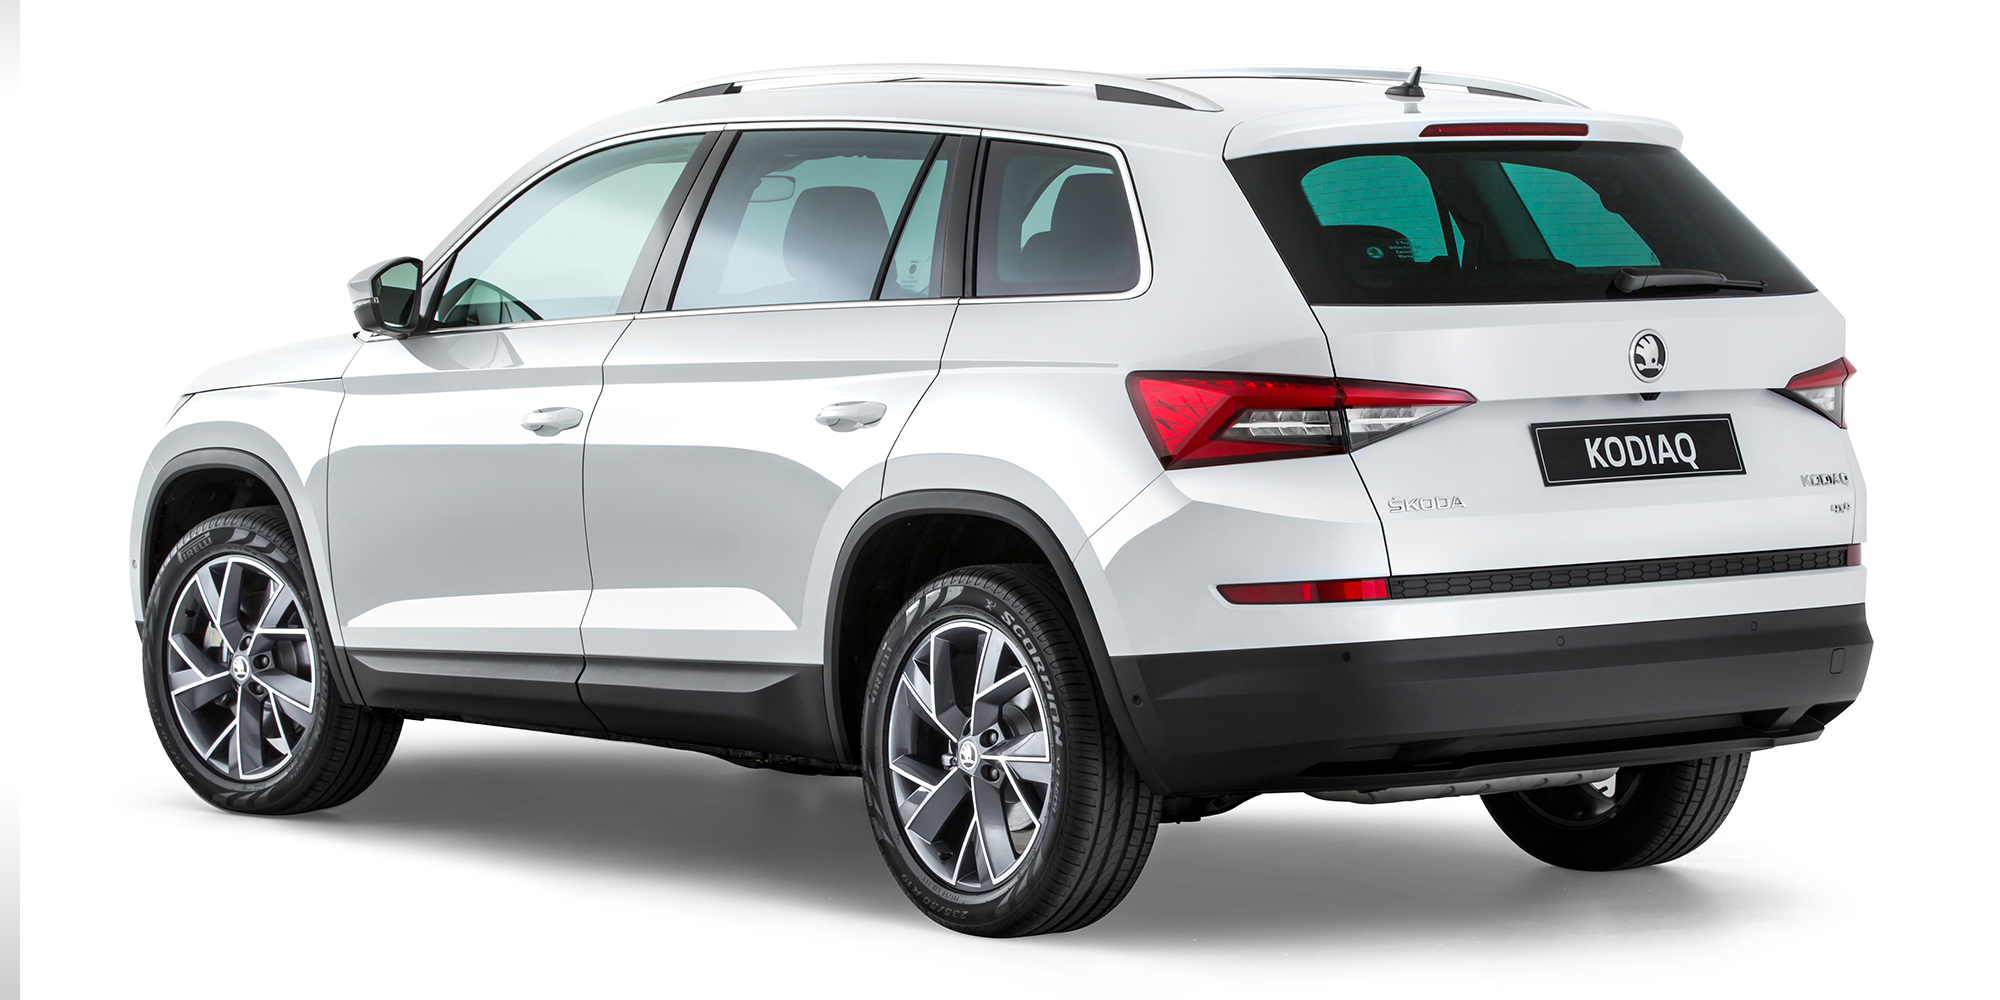 2017 skoda kodiaq pricing and specs seven seat suv detailed for may launch photos caradvice. Black Bedroom Furniture Sets. Home Design Ideas